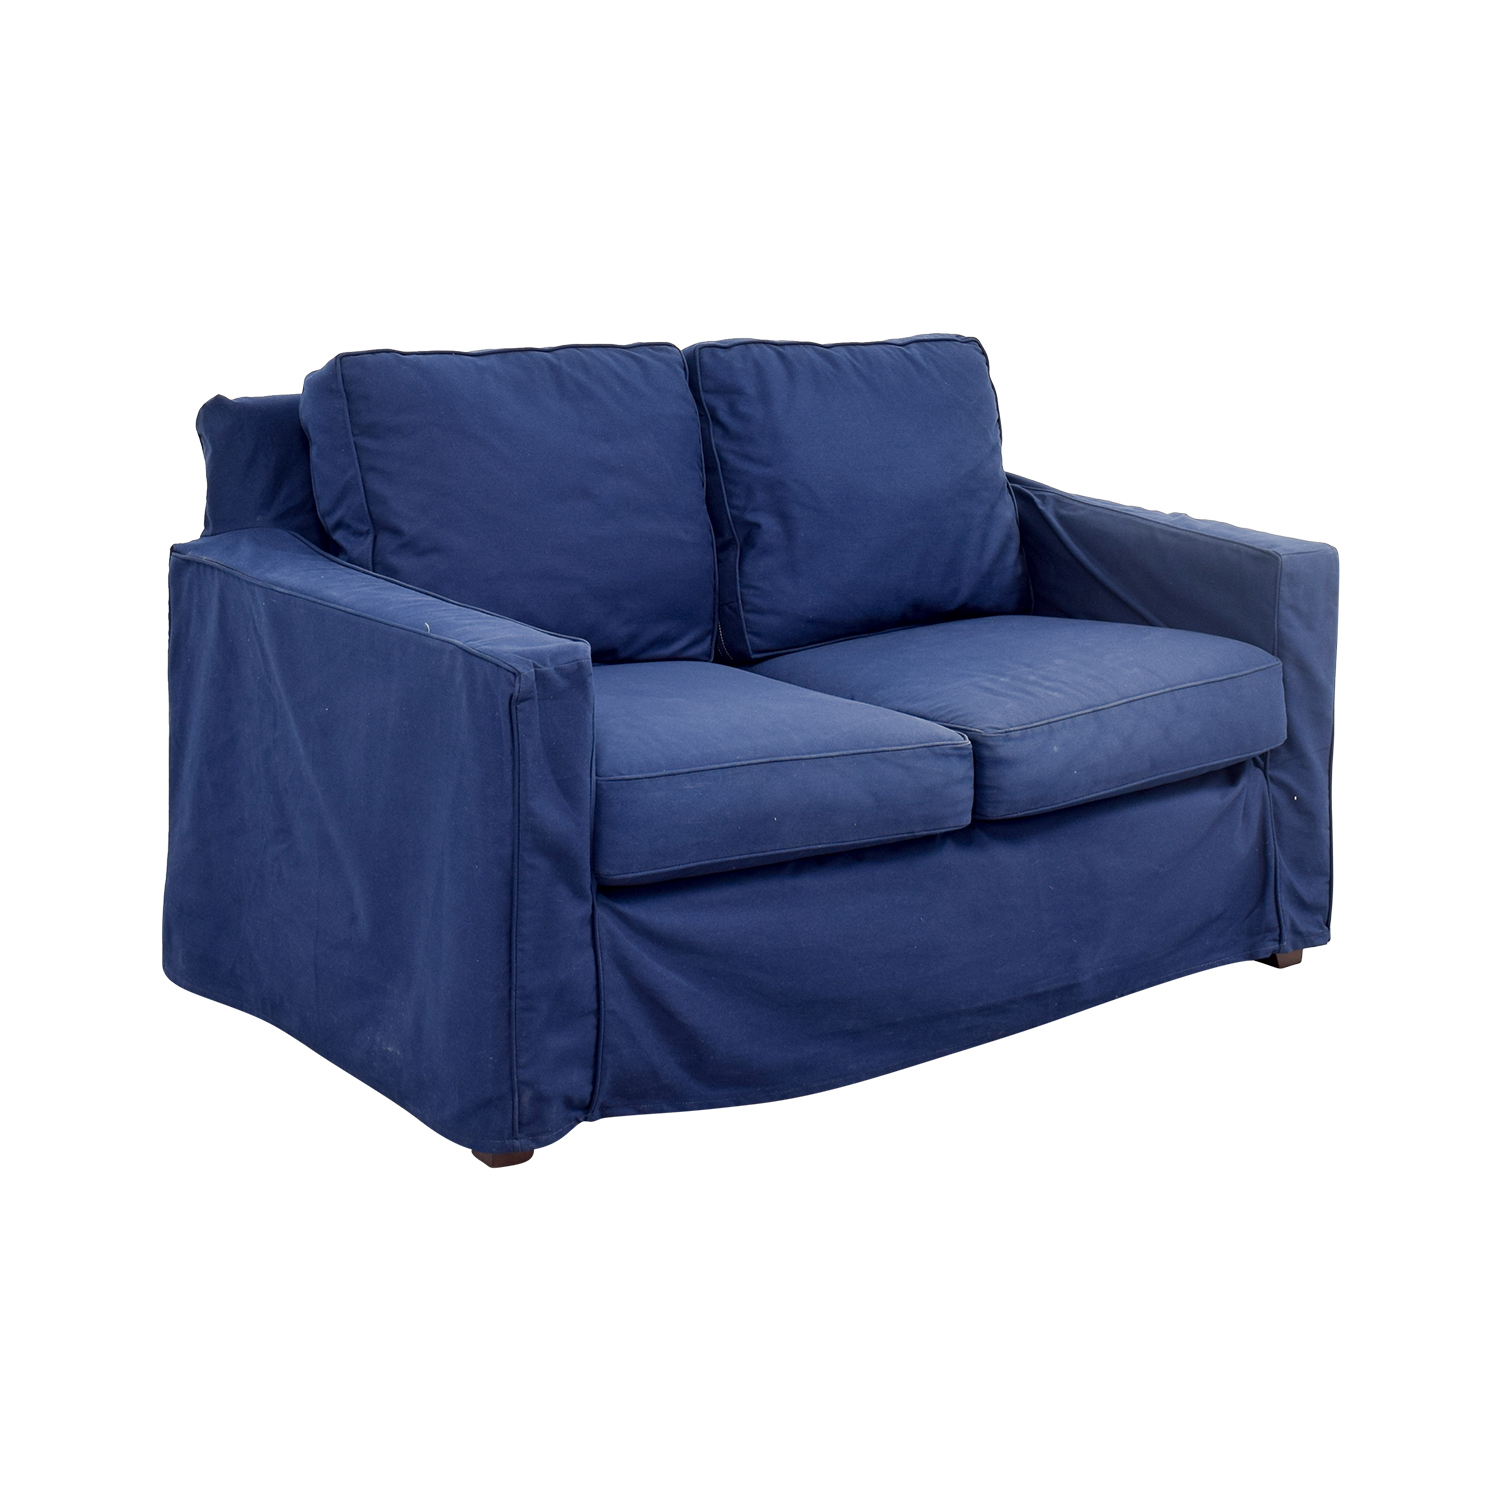 shop Pottery Barn Cameron Navy Twill Slipcovered Loveseat Pottery Barn